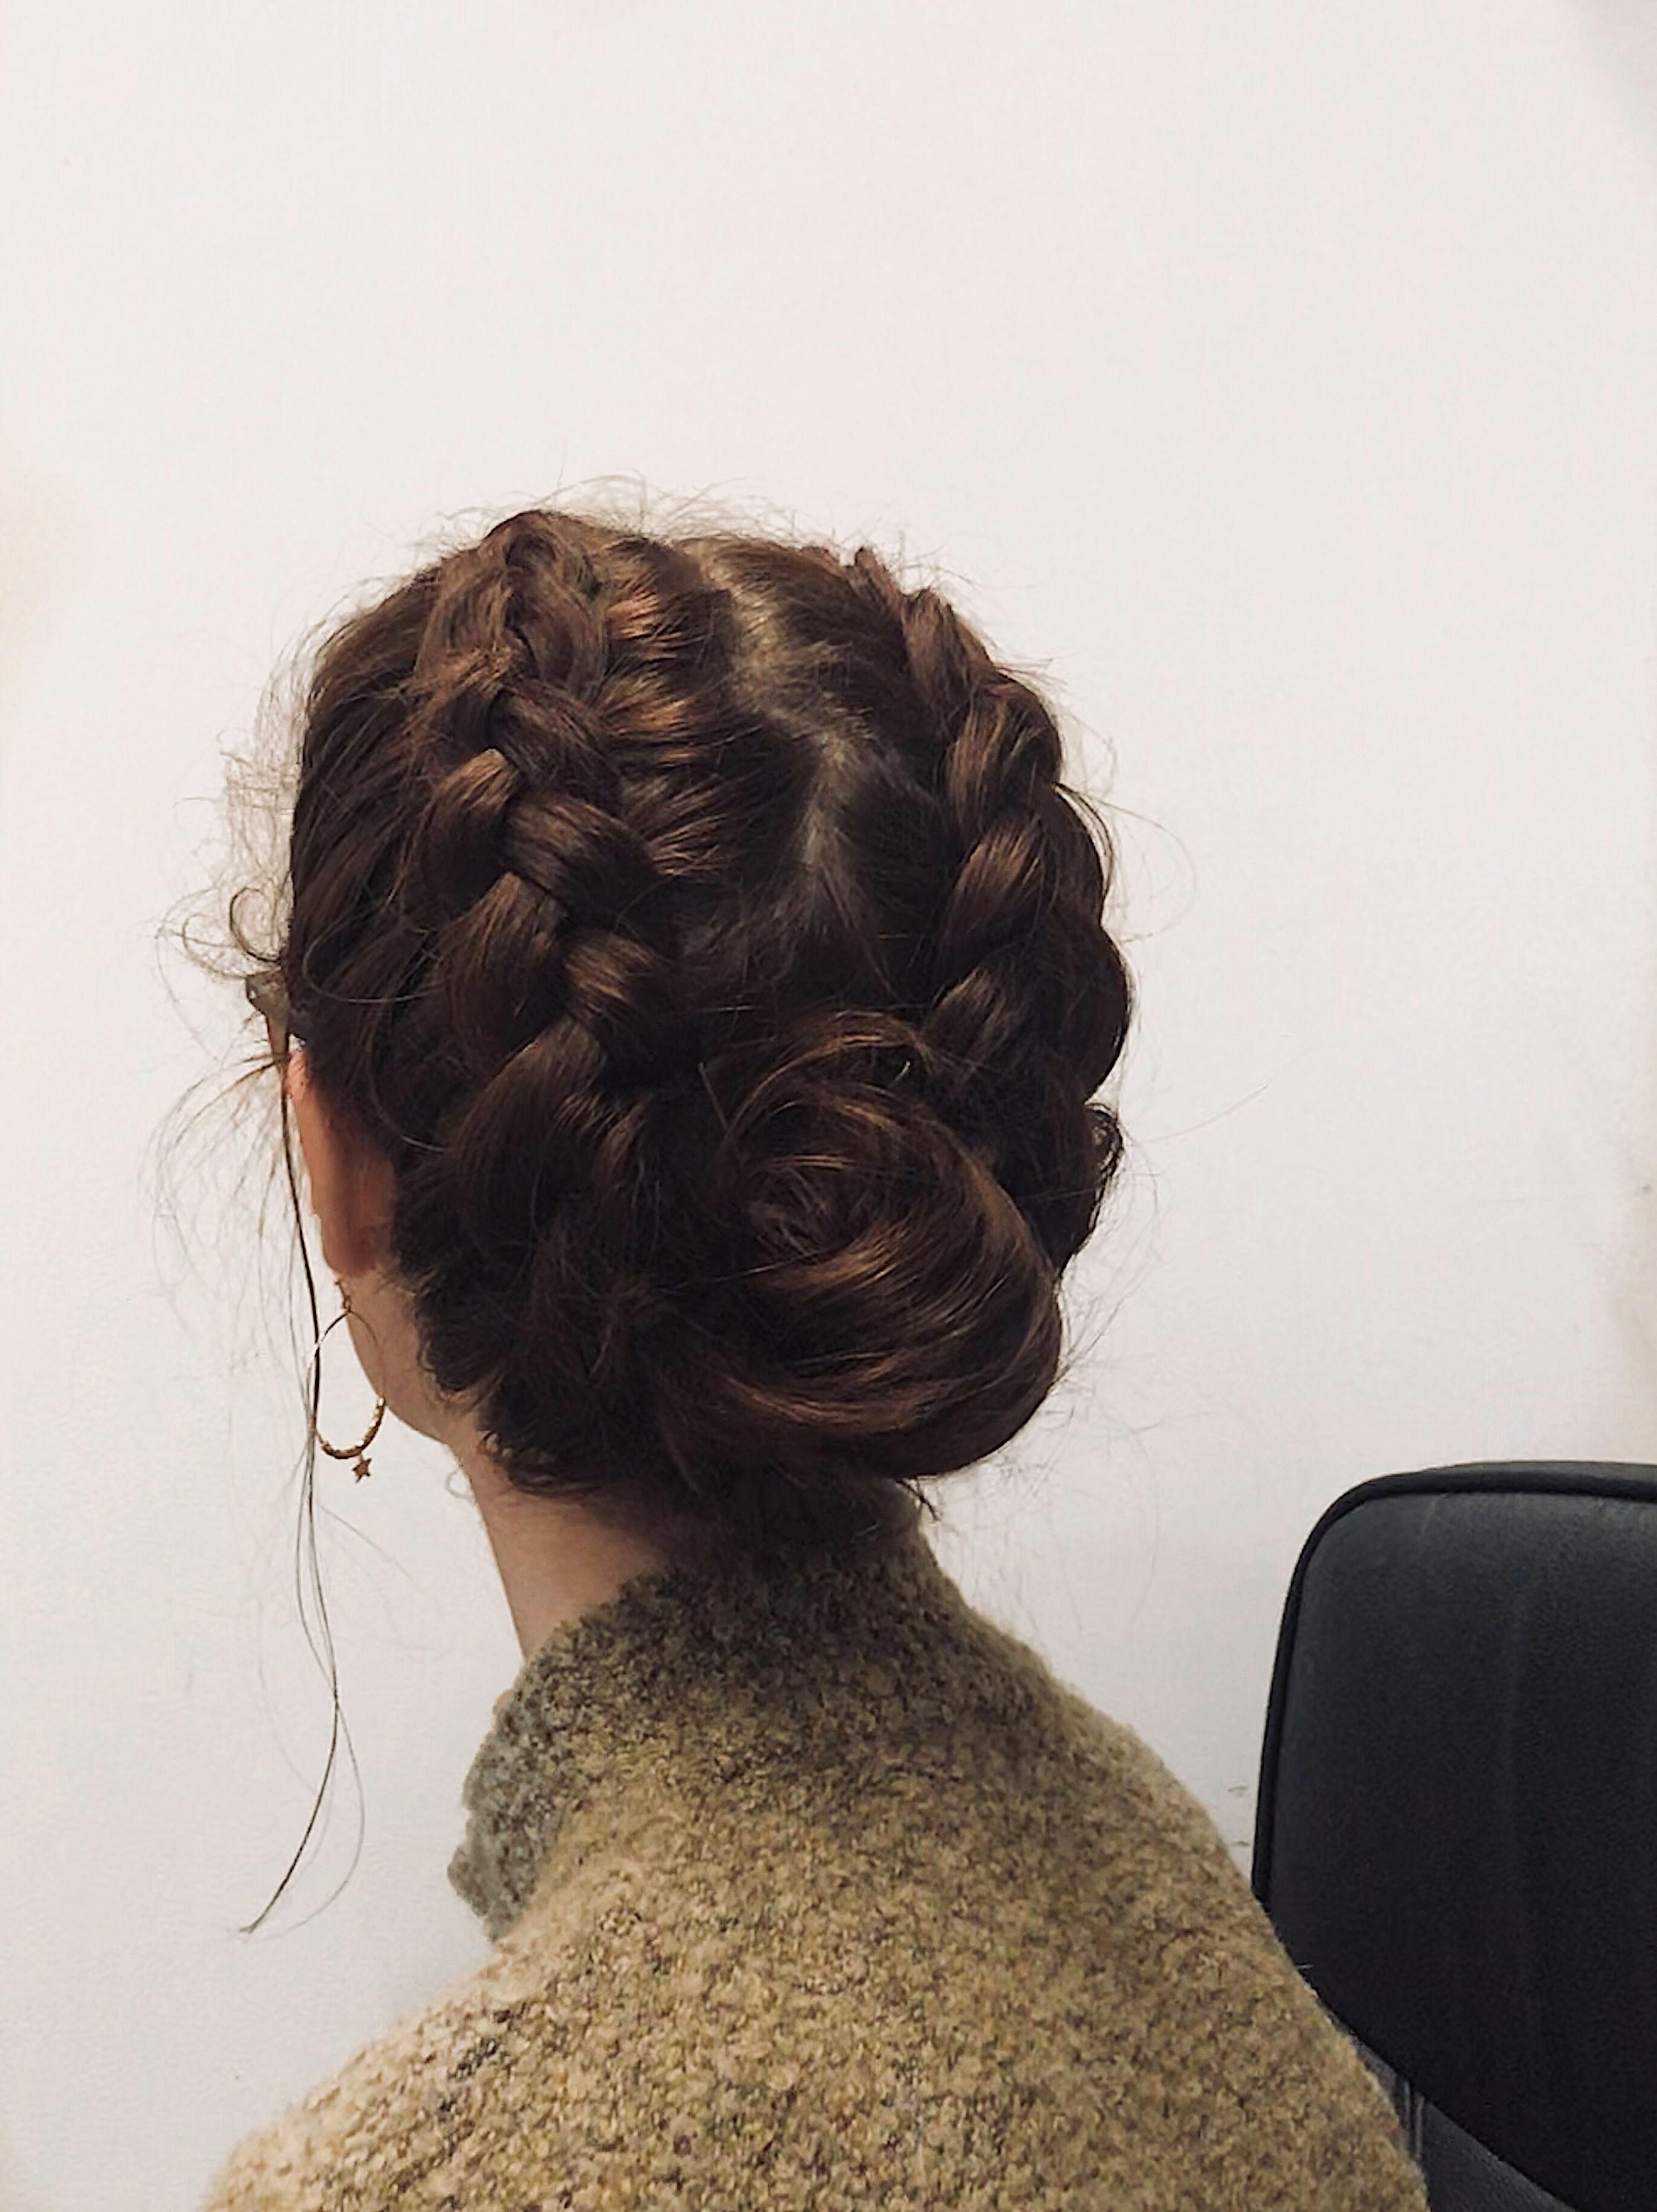 Professional Updos Big Hair Updo Easy Professional Updos For Long Hair Hair Styles Long Hair Styles Braided Hairstyles